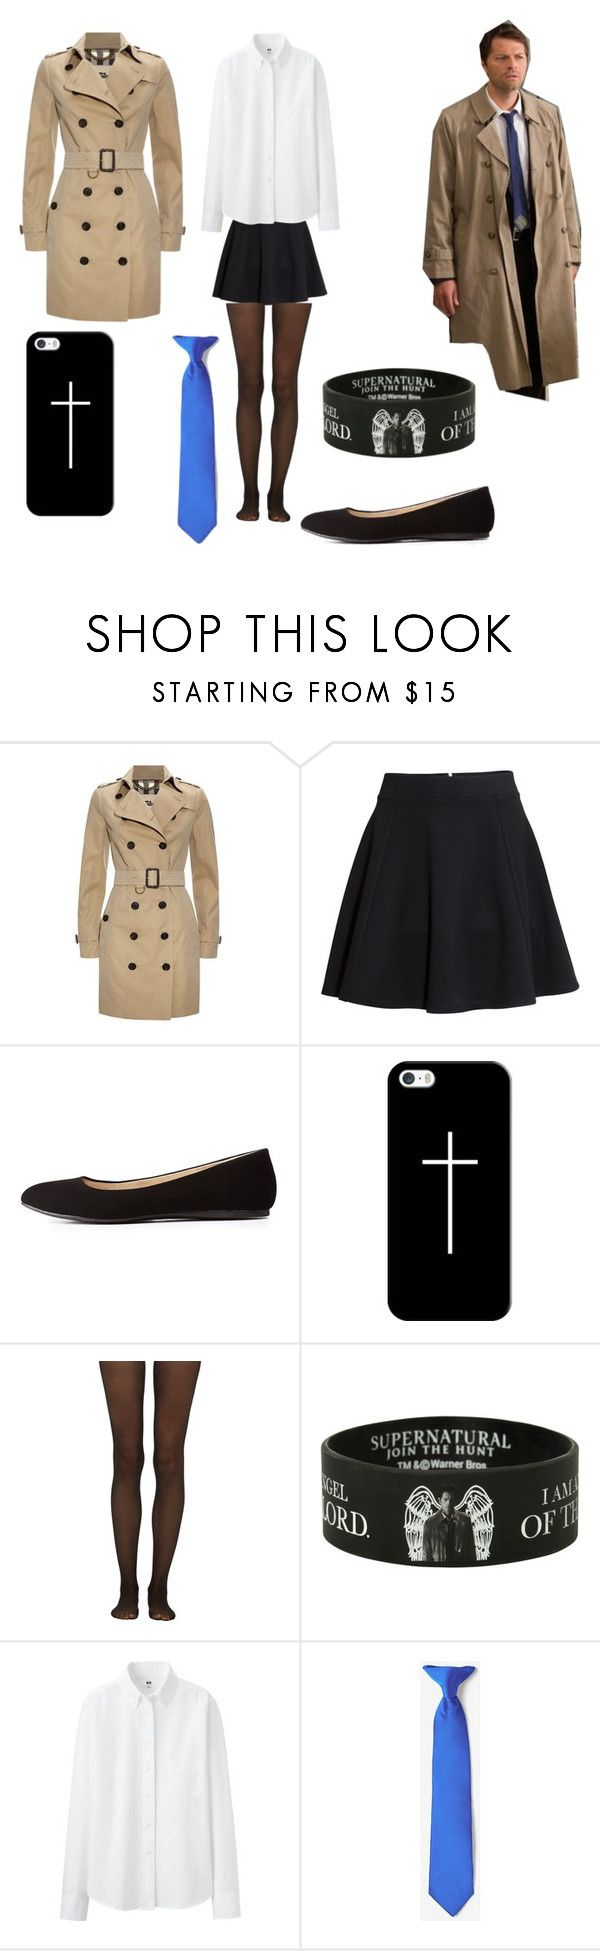 """""""Supernatural Castiel Cosplay (female)"""" by vivaciousfangirl ❤ liked on Polyvore featuring Burberry, H&M, Charlotte Russe, Casetify, Fogal and Uniqlo"""